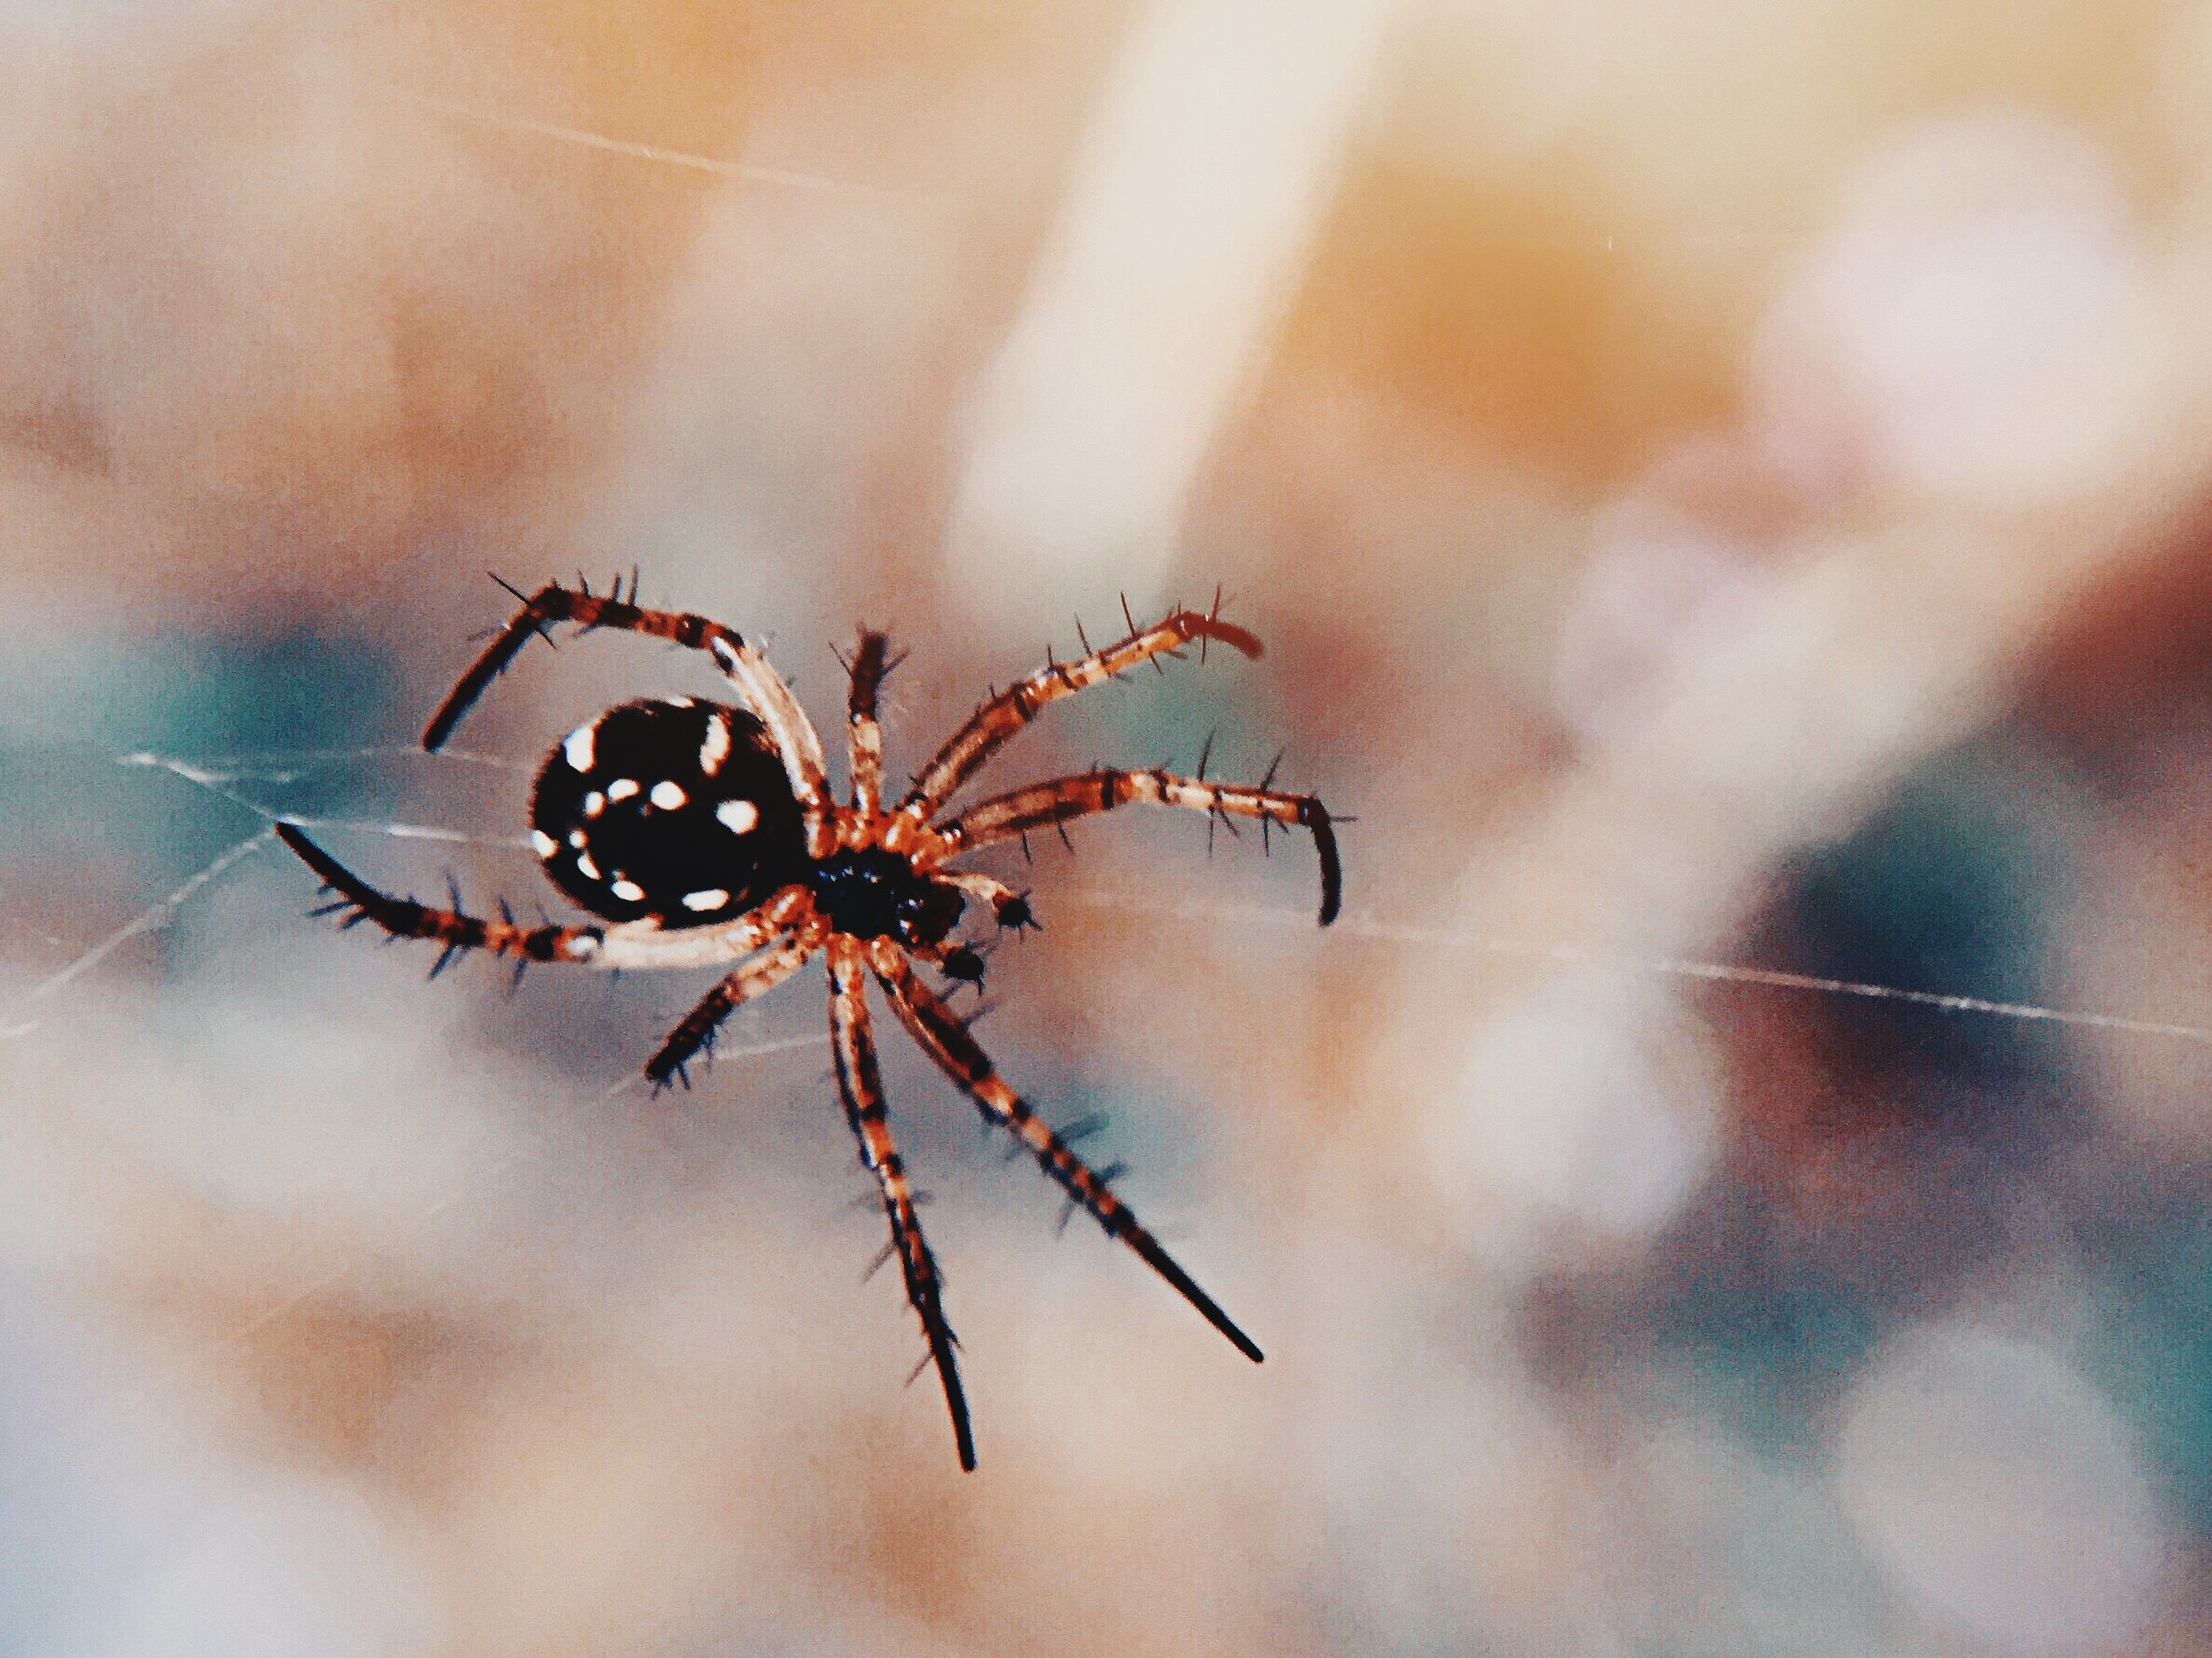 insect, animal themes, one animal, animals in the wild, wildlife, spider, close-up, spider web, focus on foreground, selective focus, day, arthropod, nature, outdoors, no people, zoology, arachnid, full length